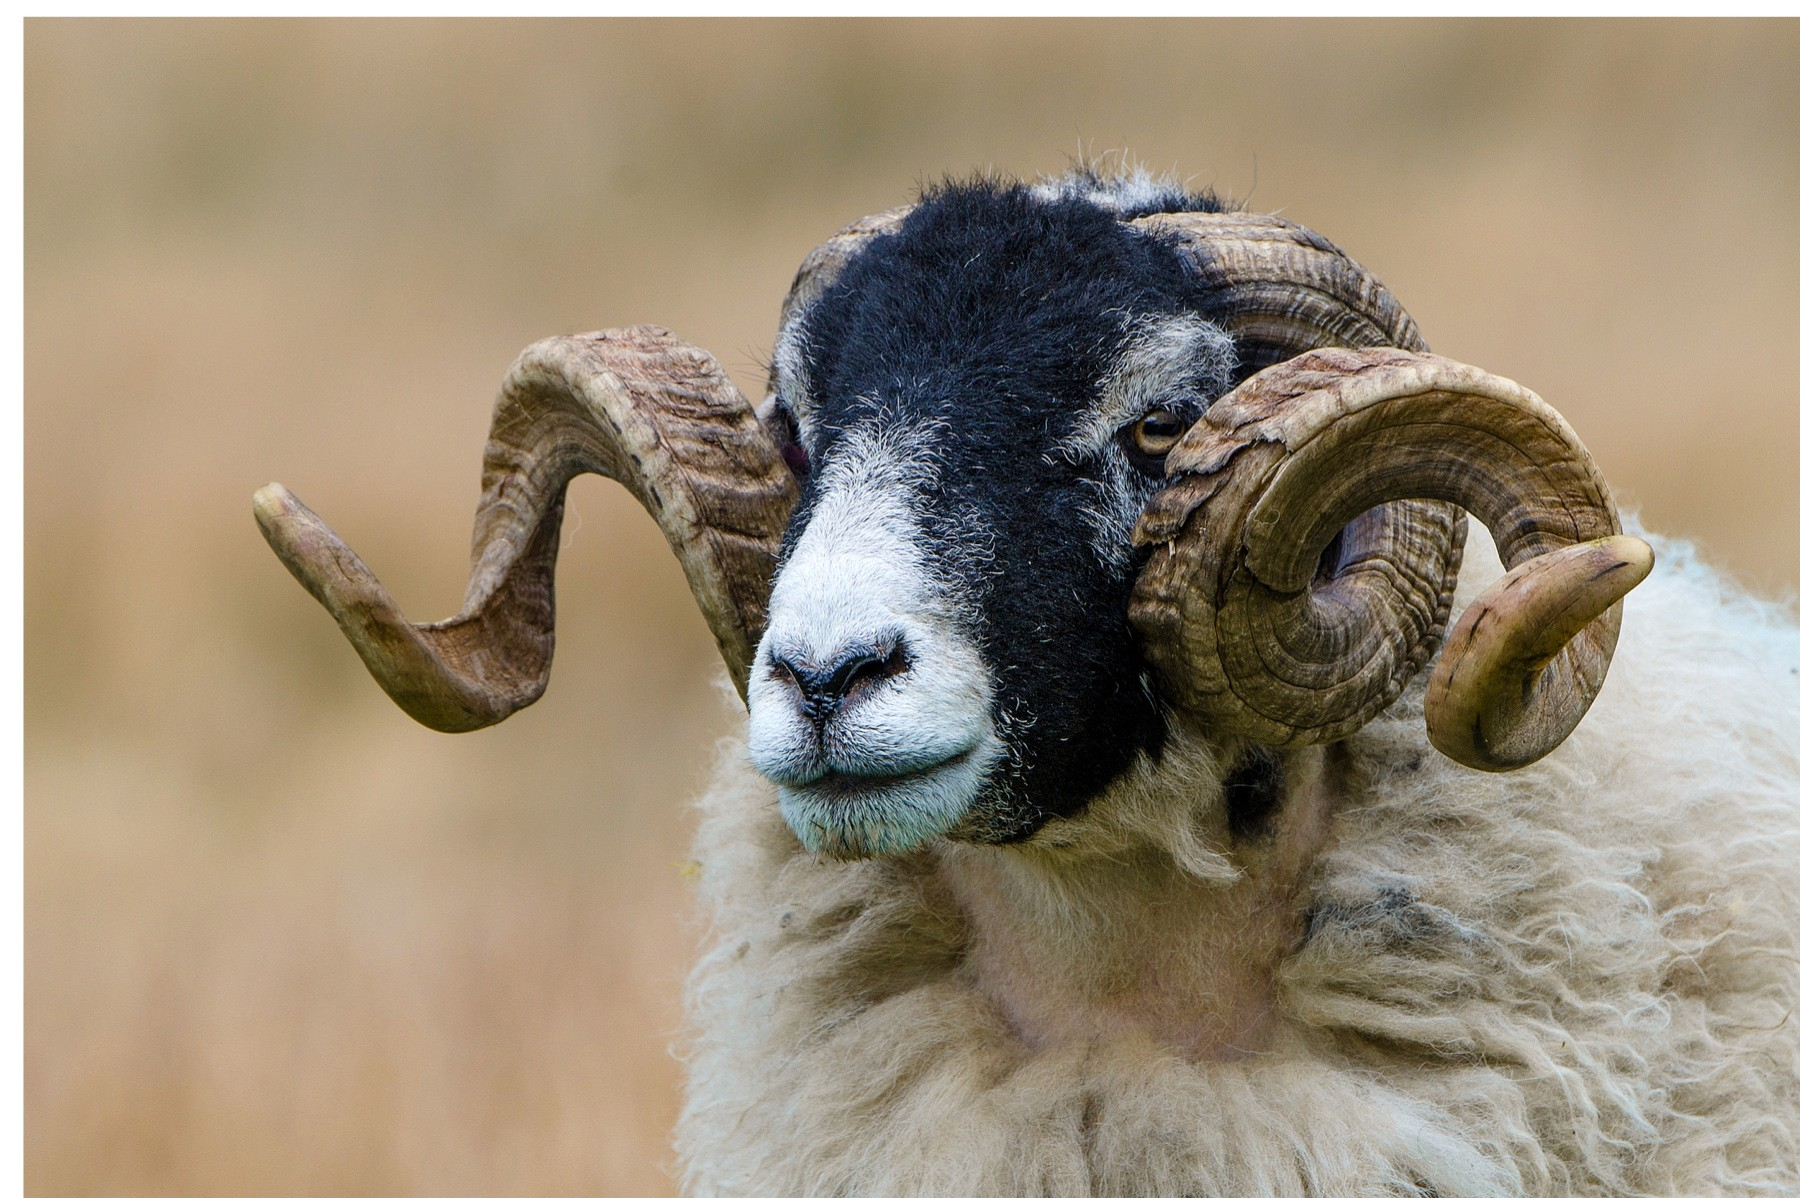 swaledale-sheep-e069ba7